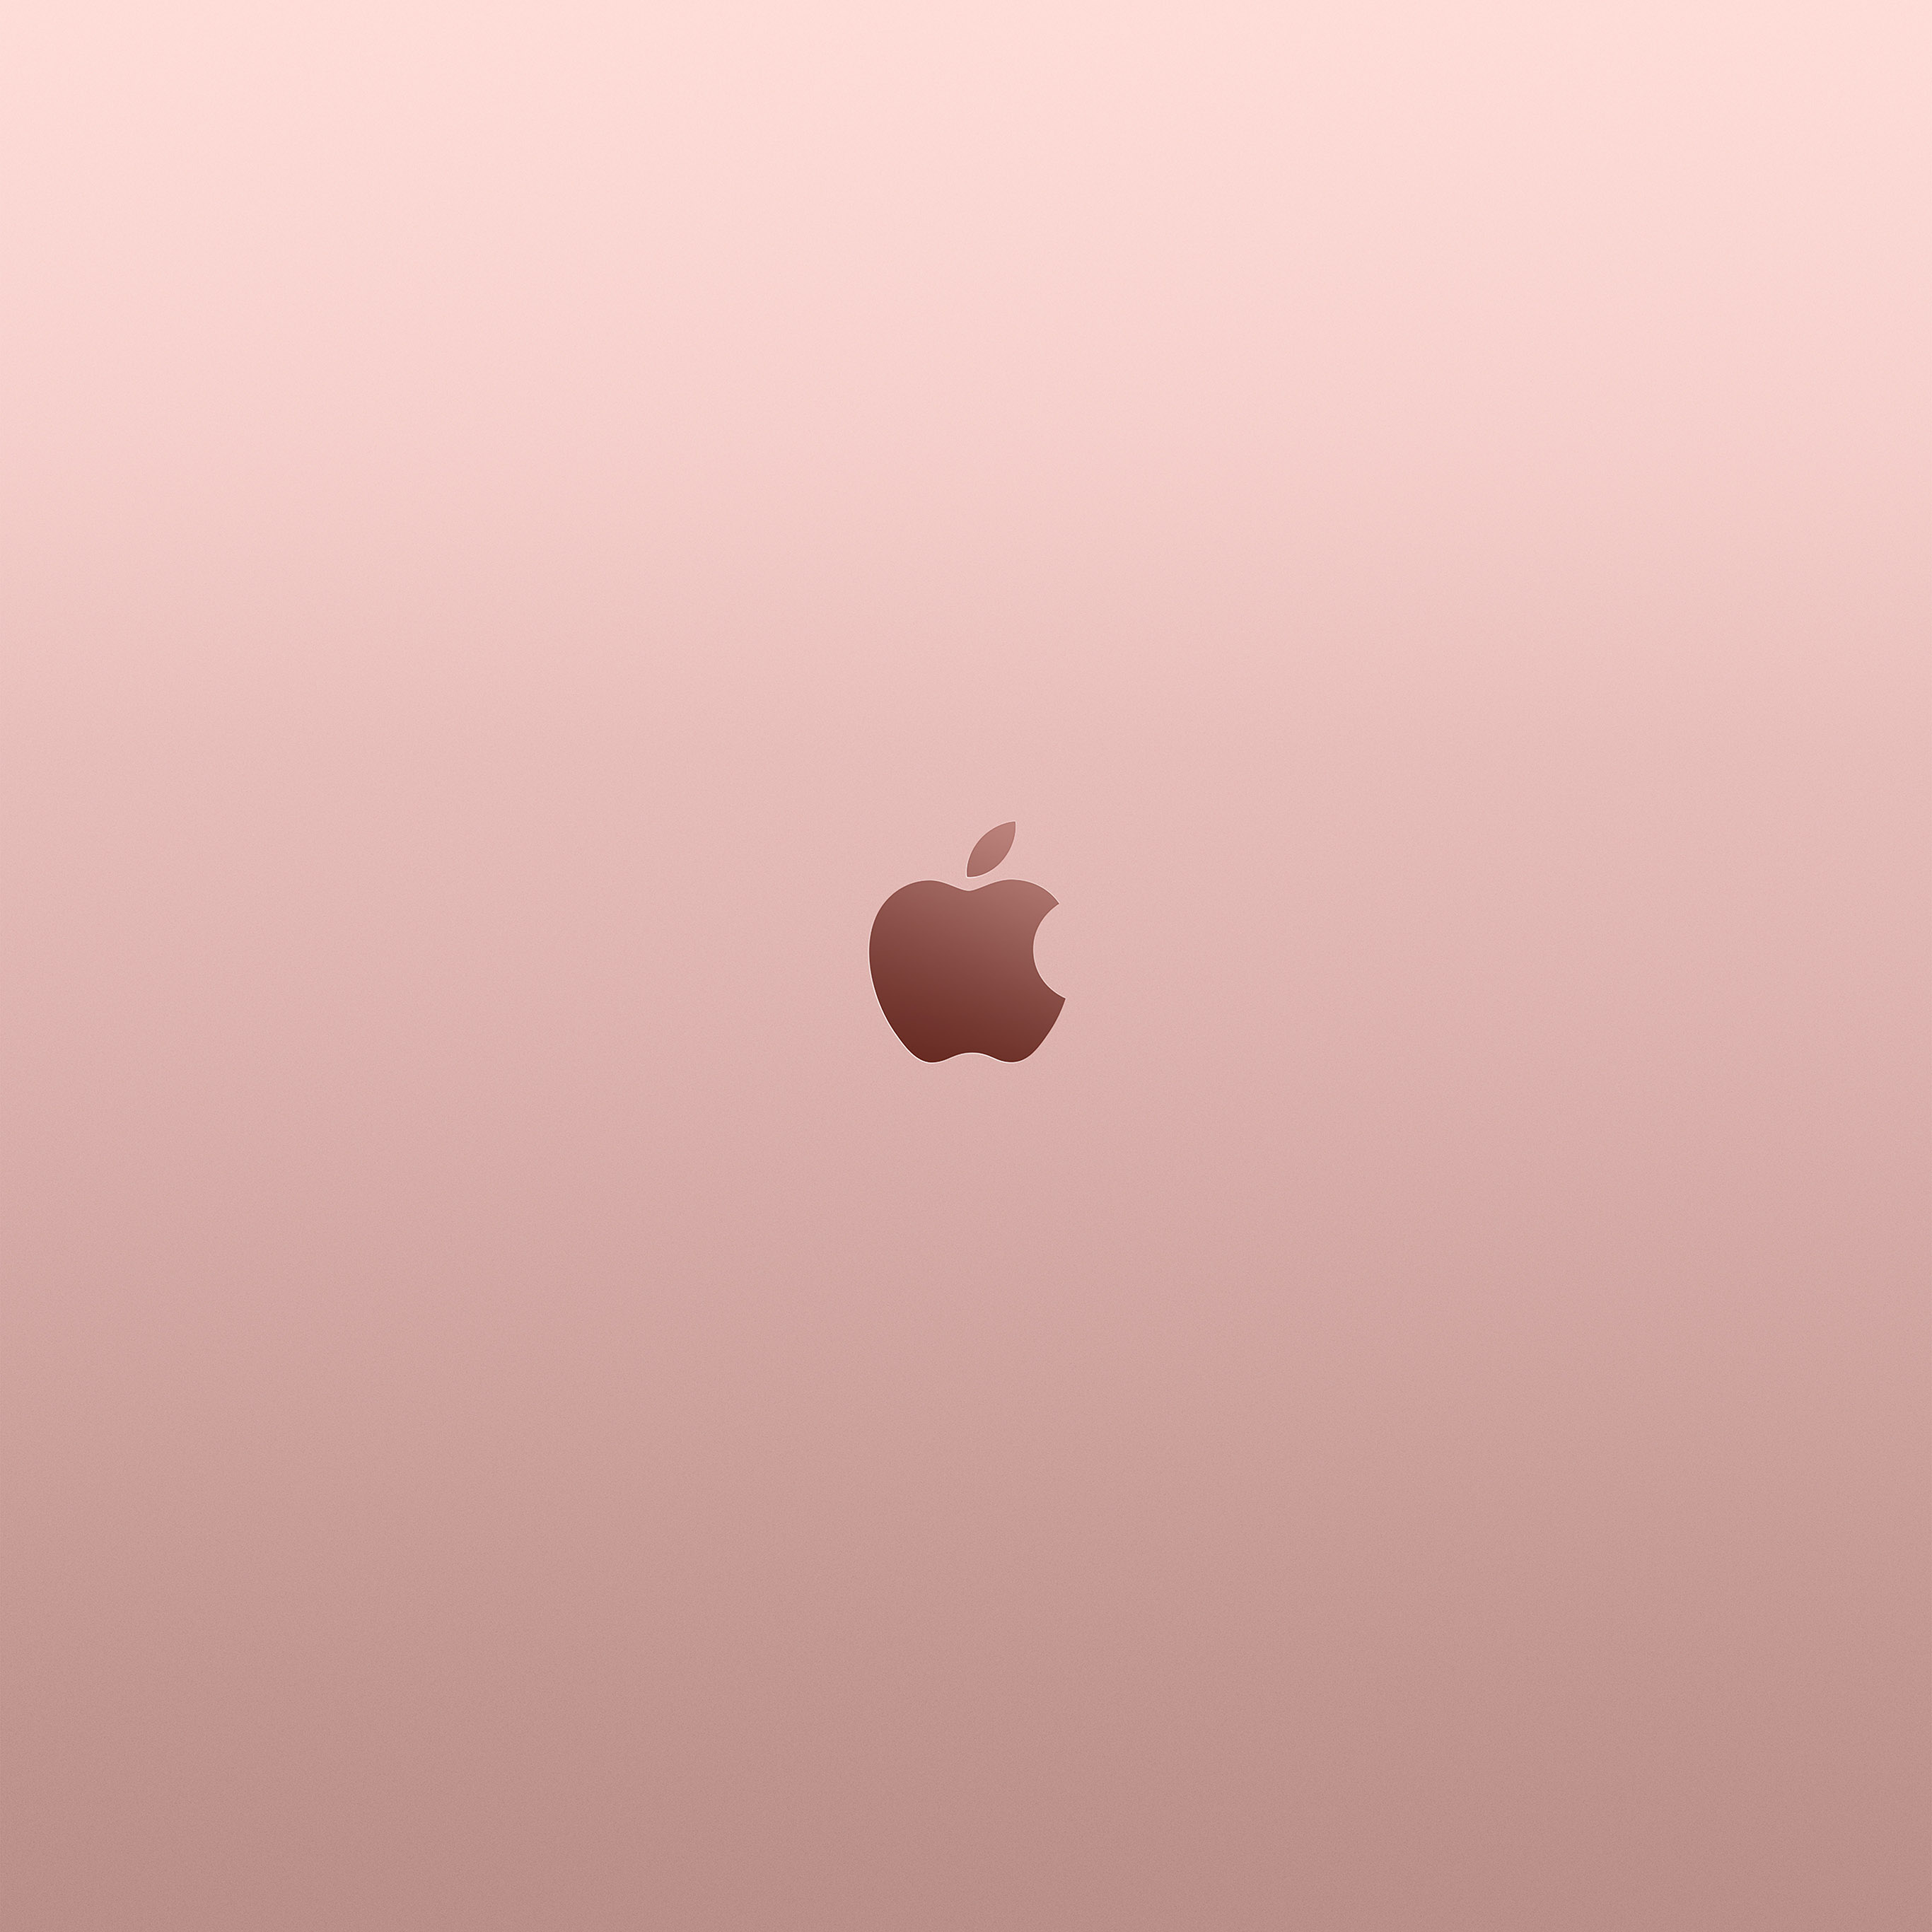 Rose Gold Apple Ipad Wallpaper